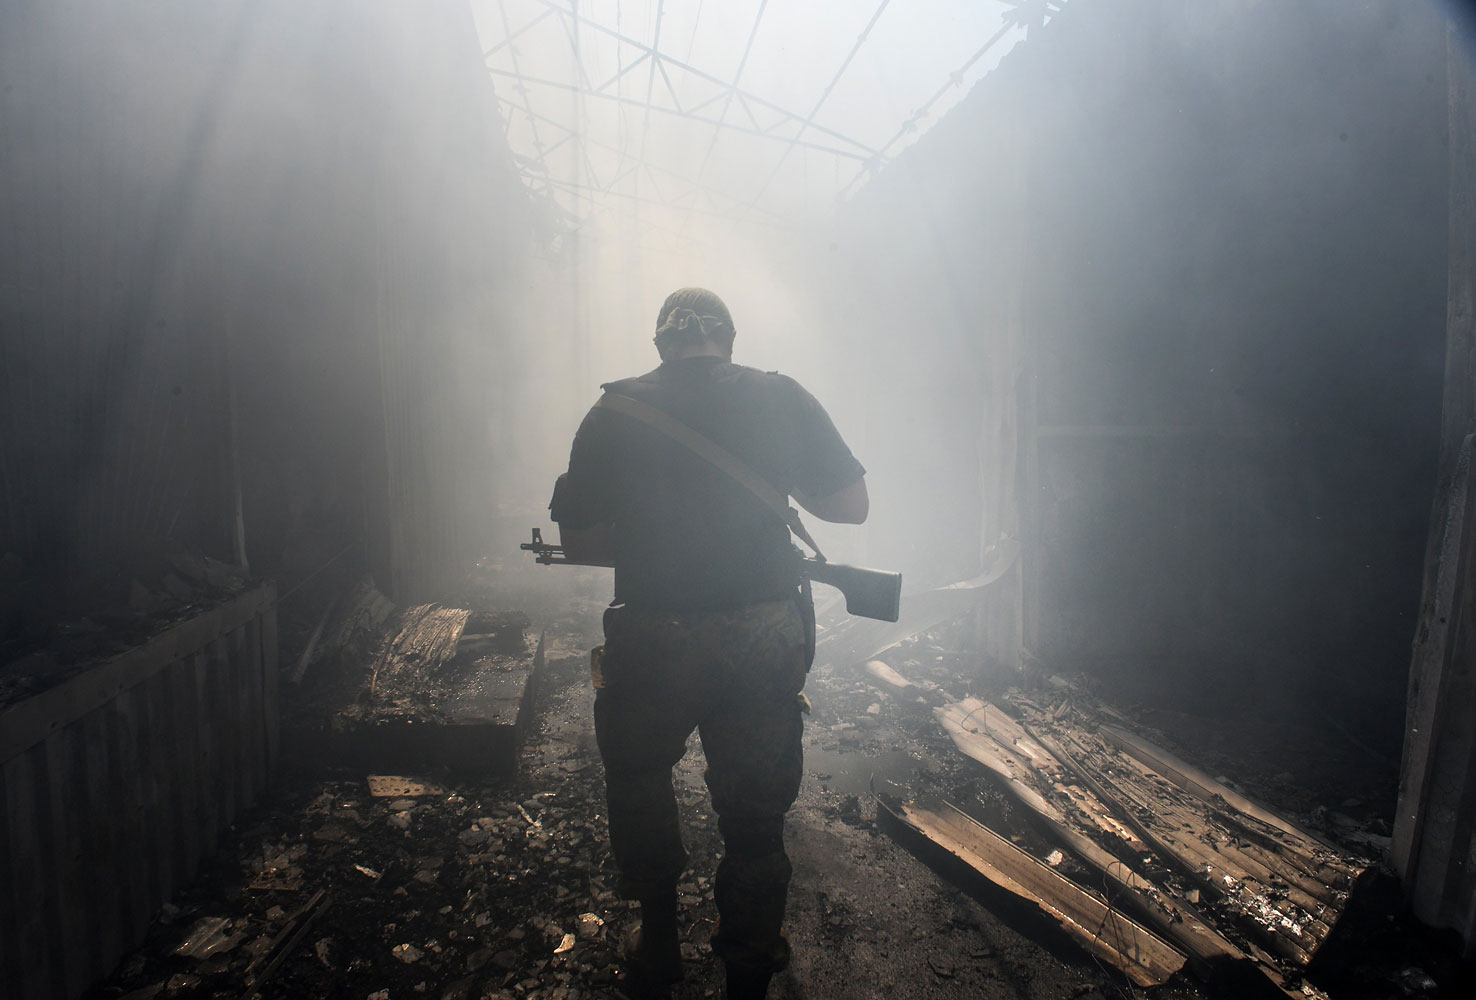 A pro-Russian rebel walks in a passage at a local market damaged by shelling in the town of Donetsk, eastern Ukraine, on Aug. 26, 2014